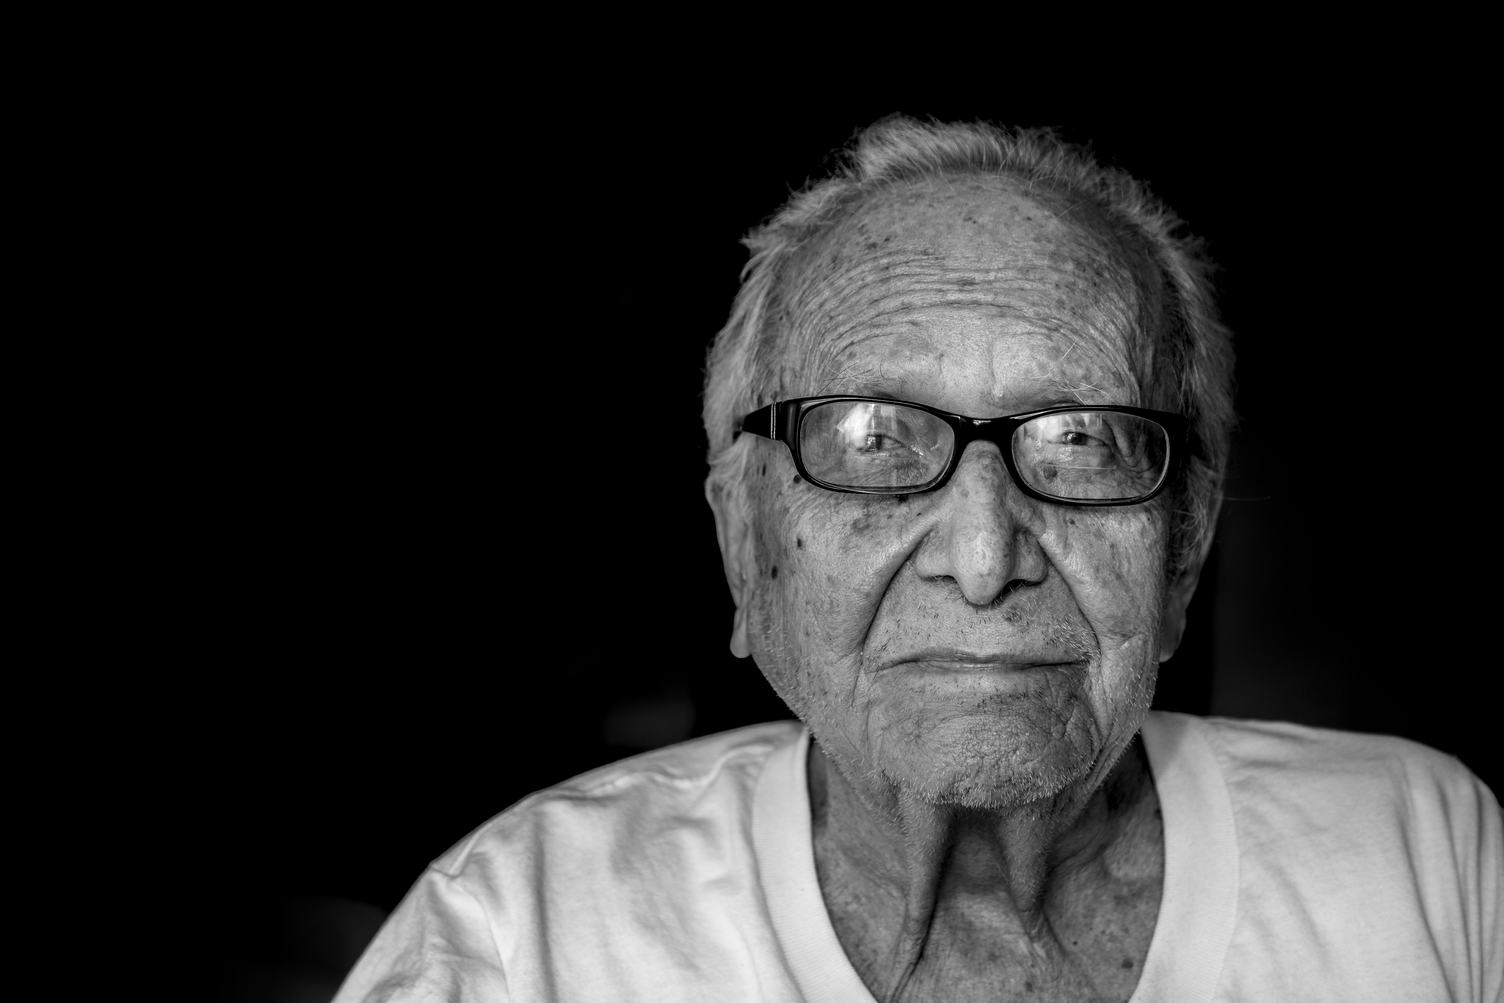 Black & White Portrait of Old Man Wearing Glasses